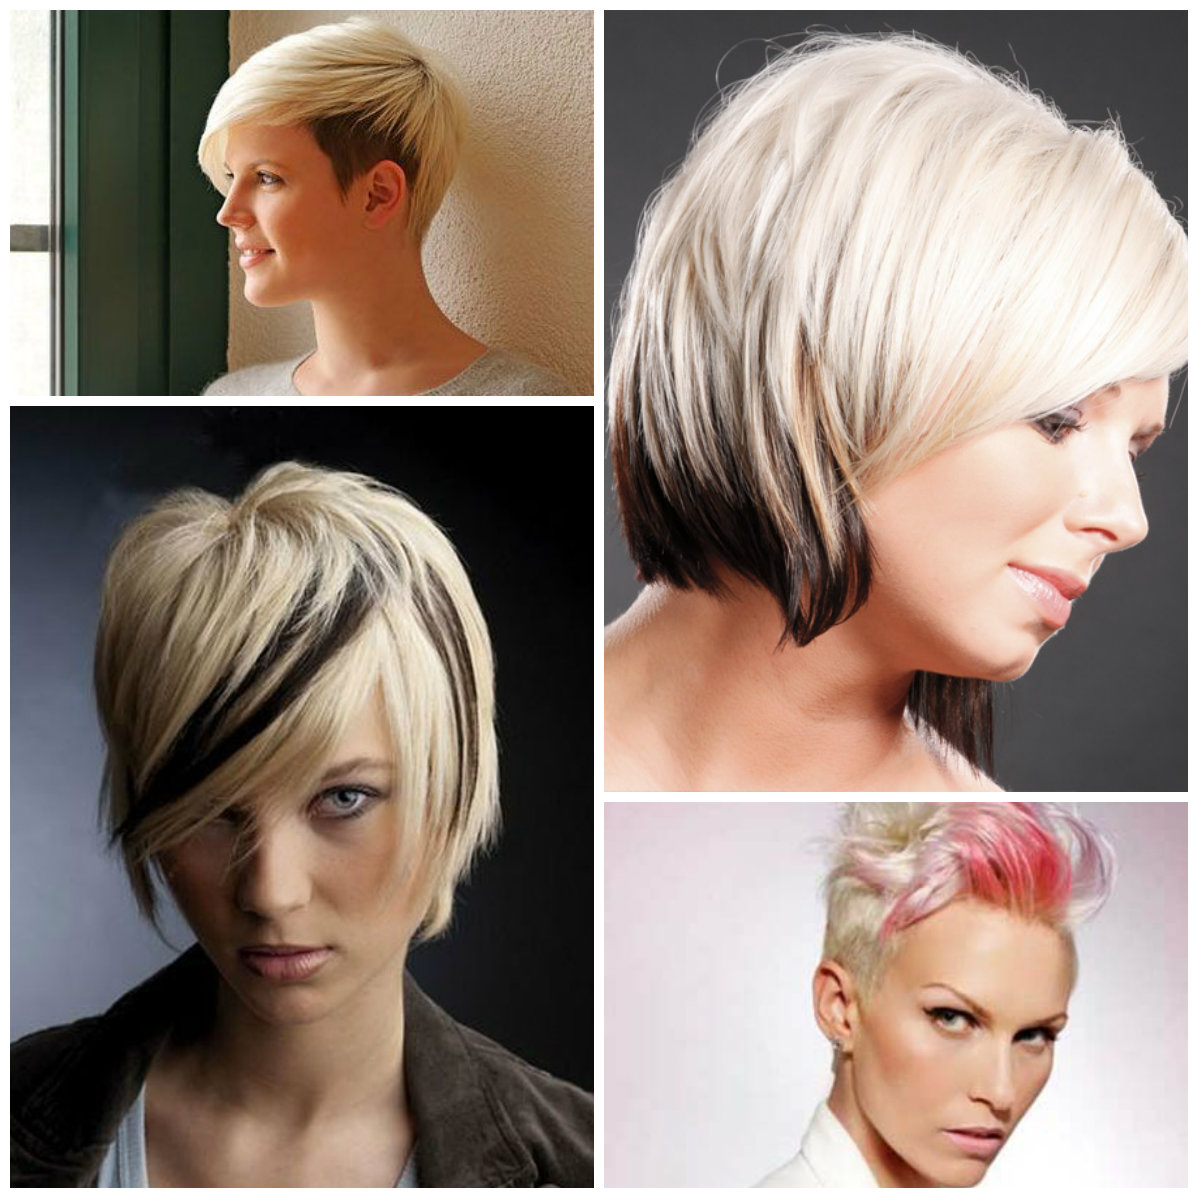 Haircuts Hairstyles 2016 Two Tone Hair Colors For Short Haircuts 2019 Haircuts